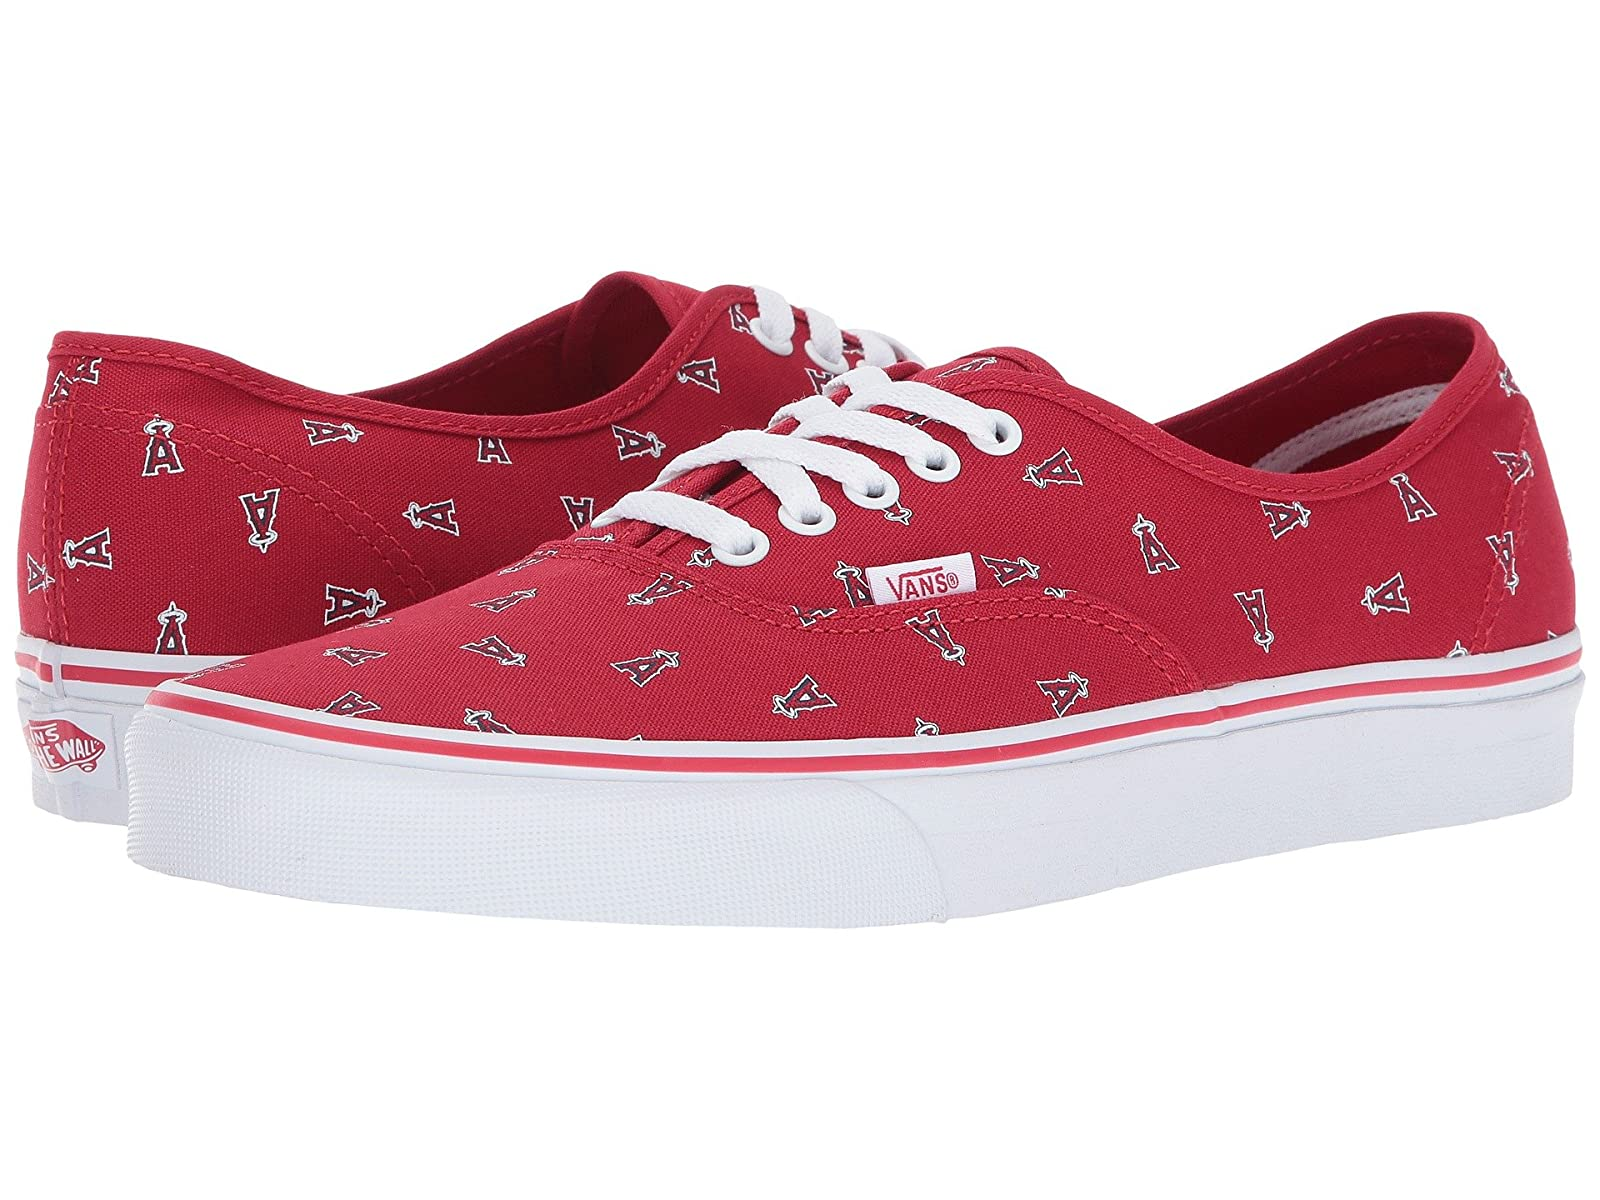 Vans Authentic x MLBCheap and distinctive eye-catching shoes